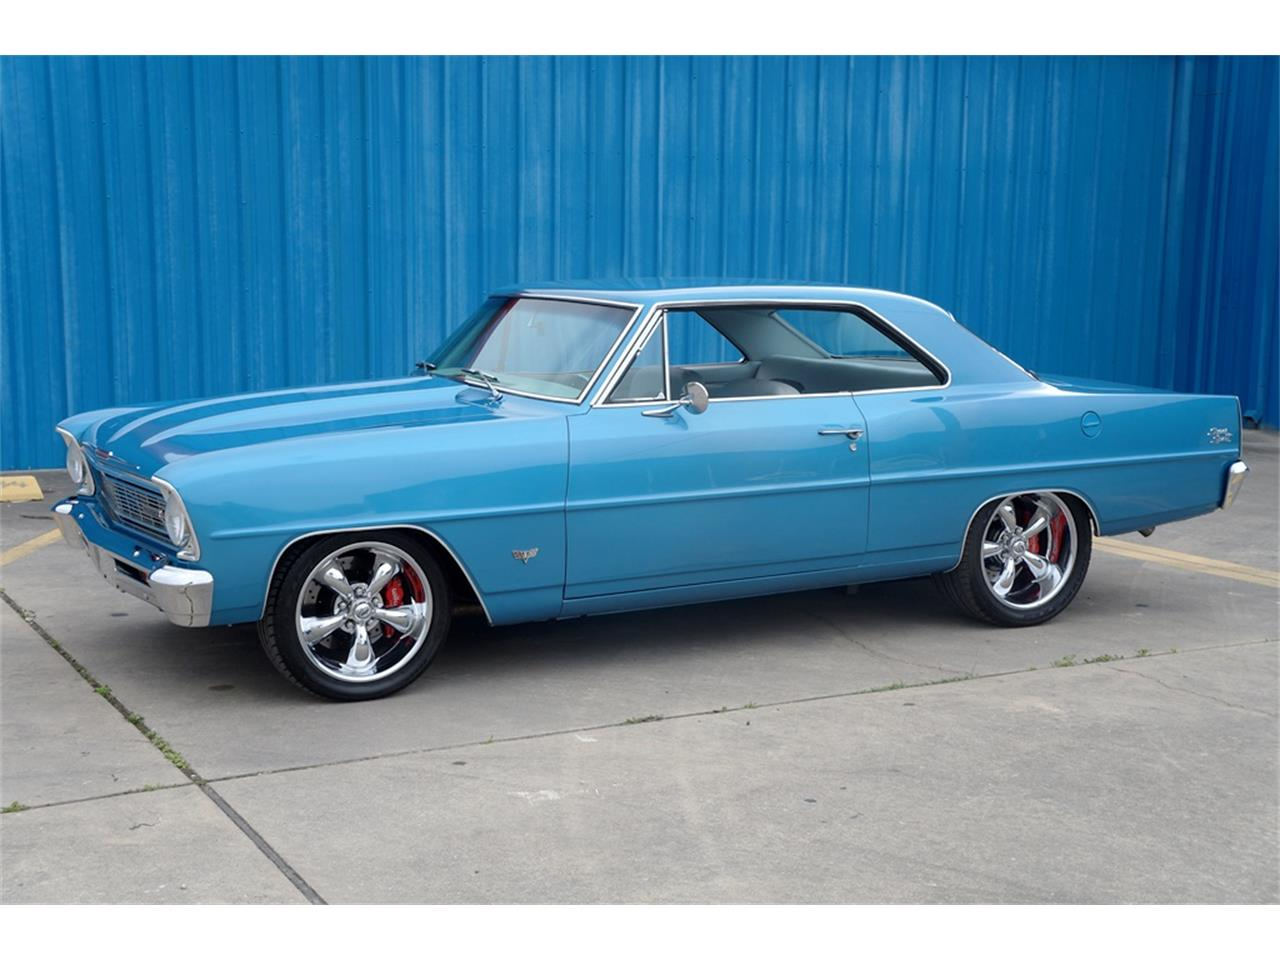 Large Picture of '66 Chevrolet Nova located in New Braunfels Texas - $64,900.00 Offered by A&E Classic Cars - PWOL